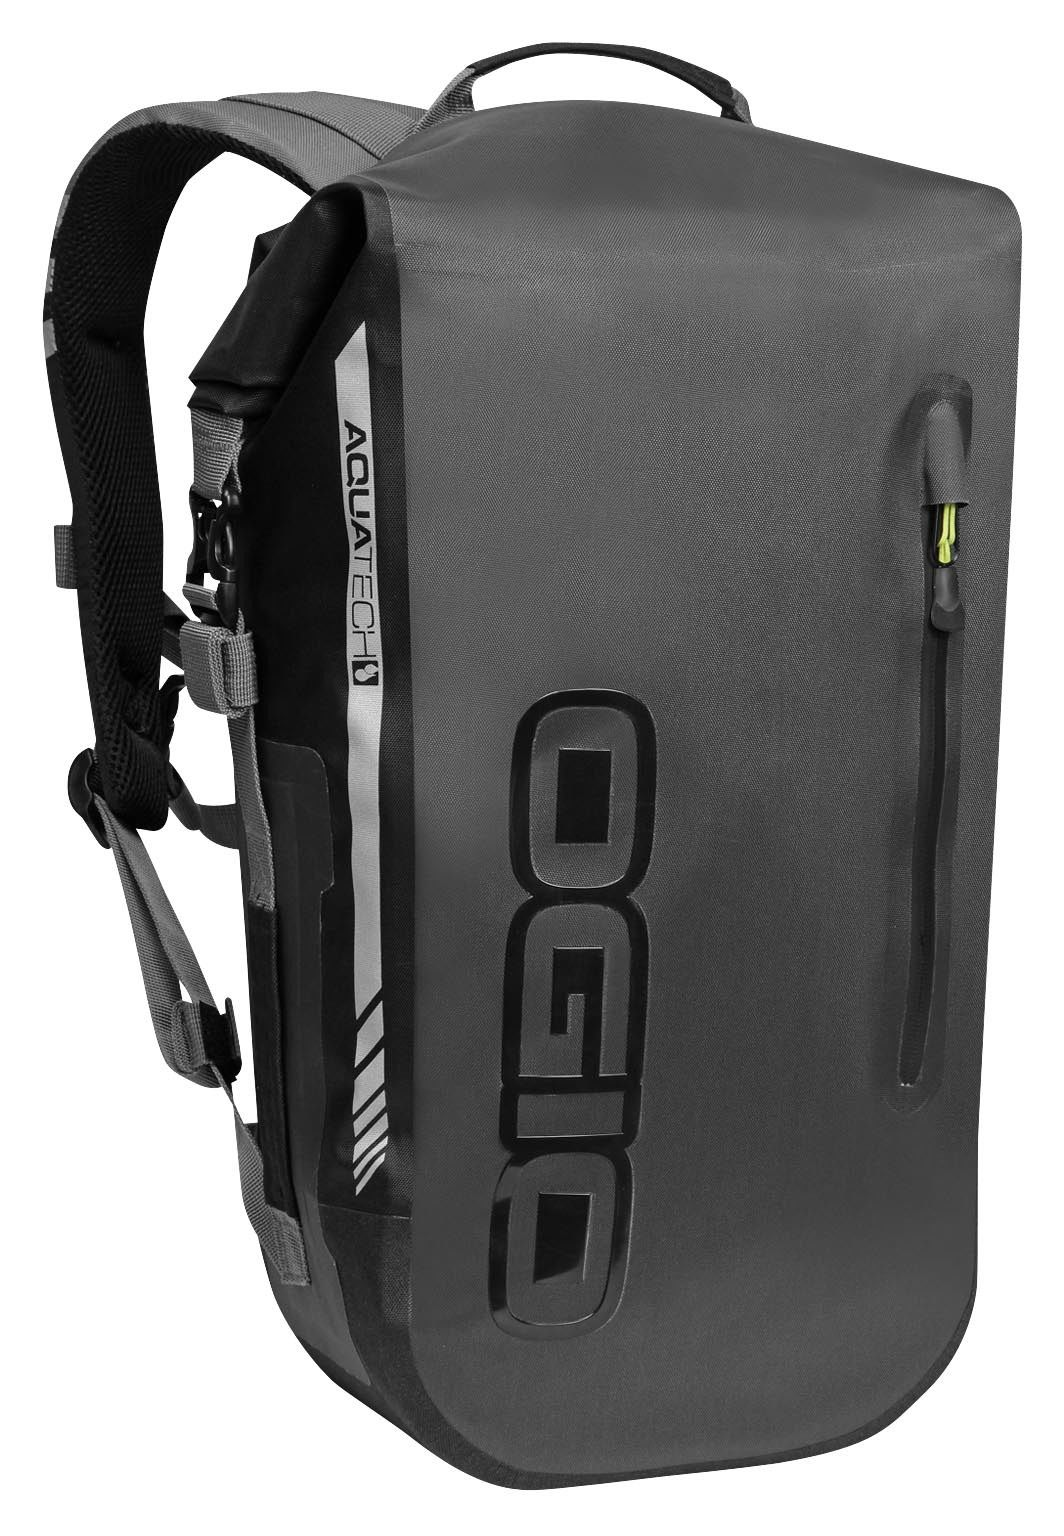 OGIO All Elements Backpack | 10% ($13.00) Off! - RevZilla